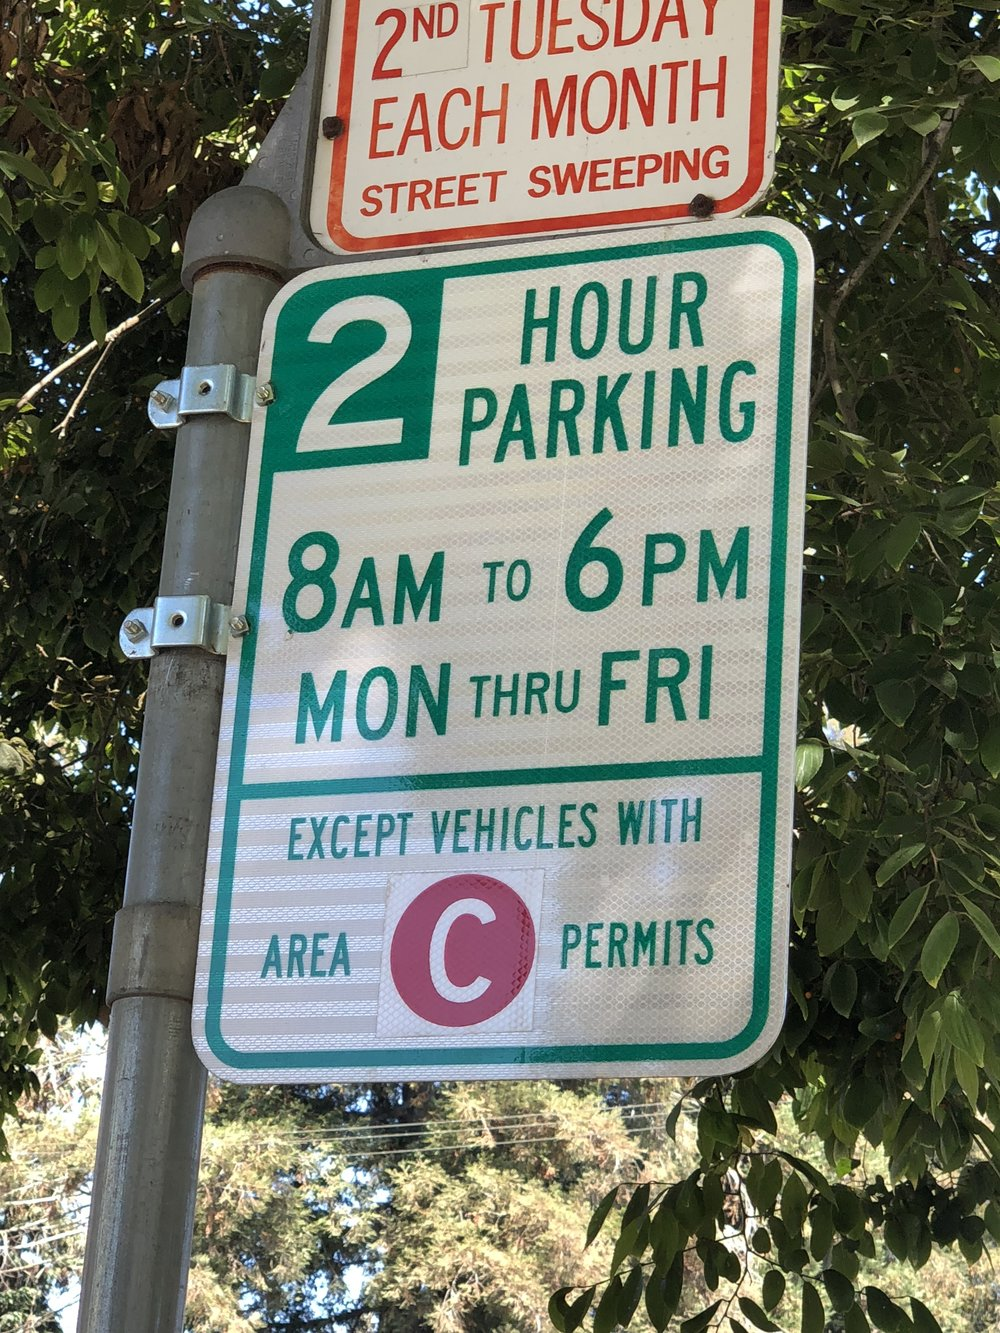 C Parking Permit City of Oakland